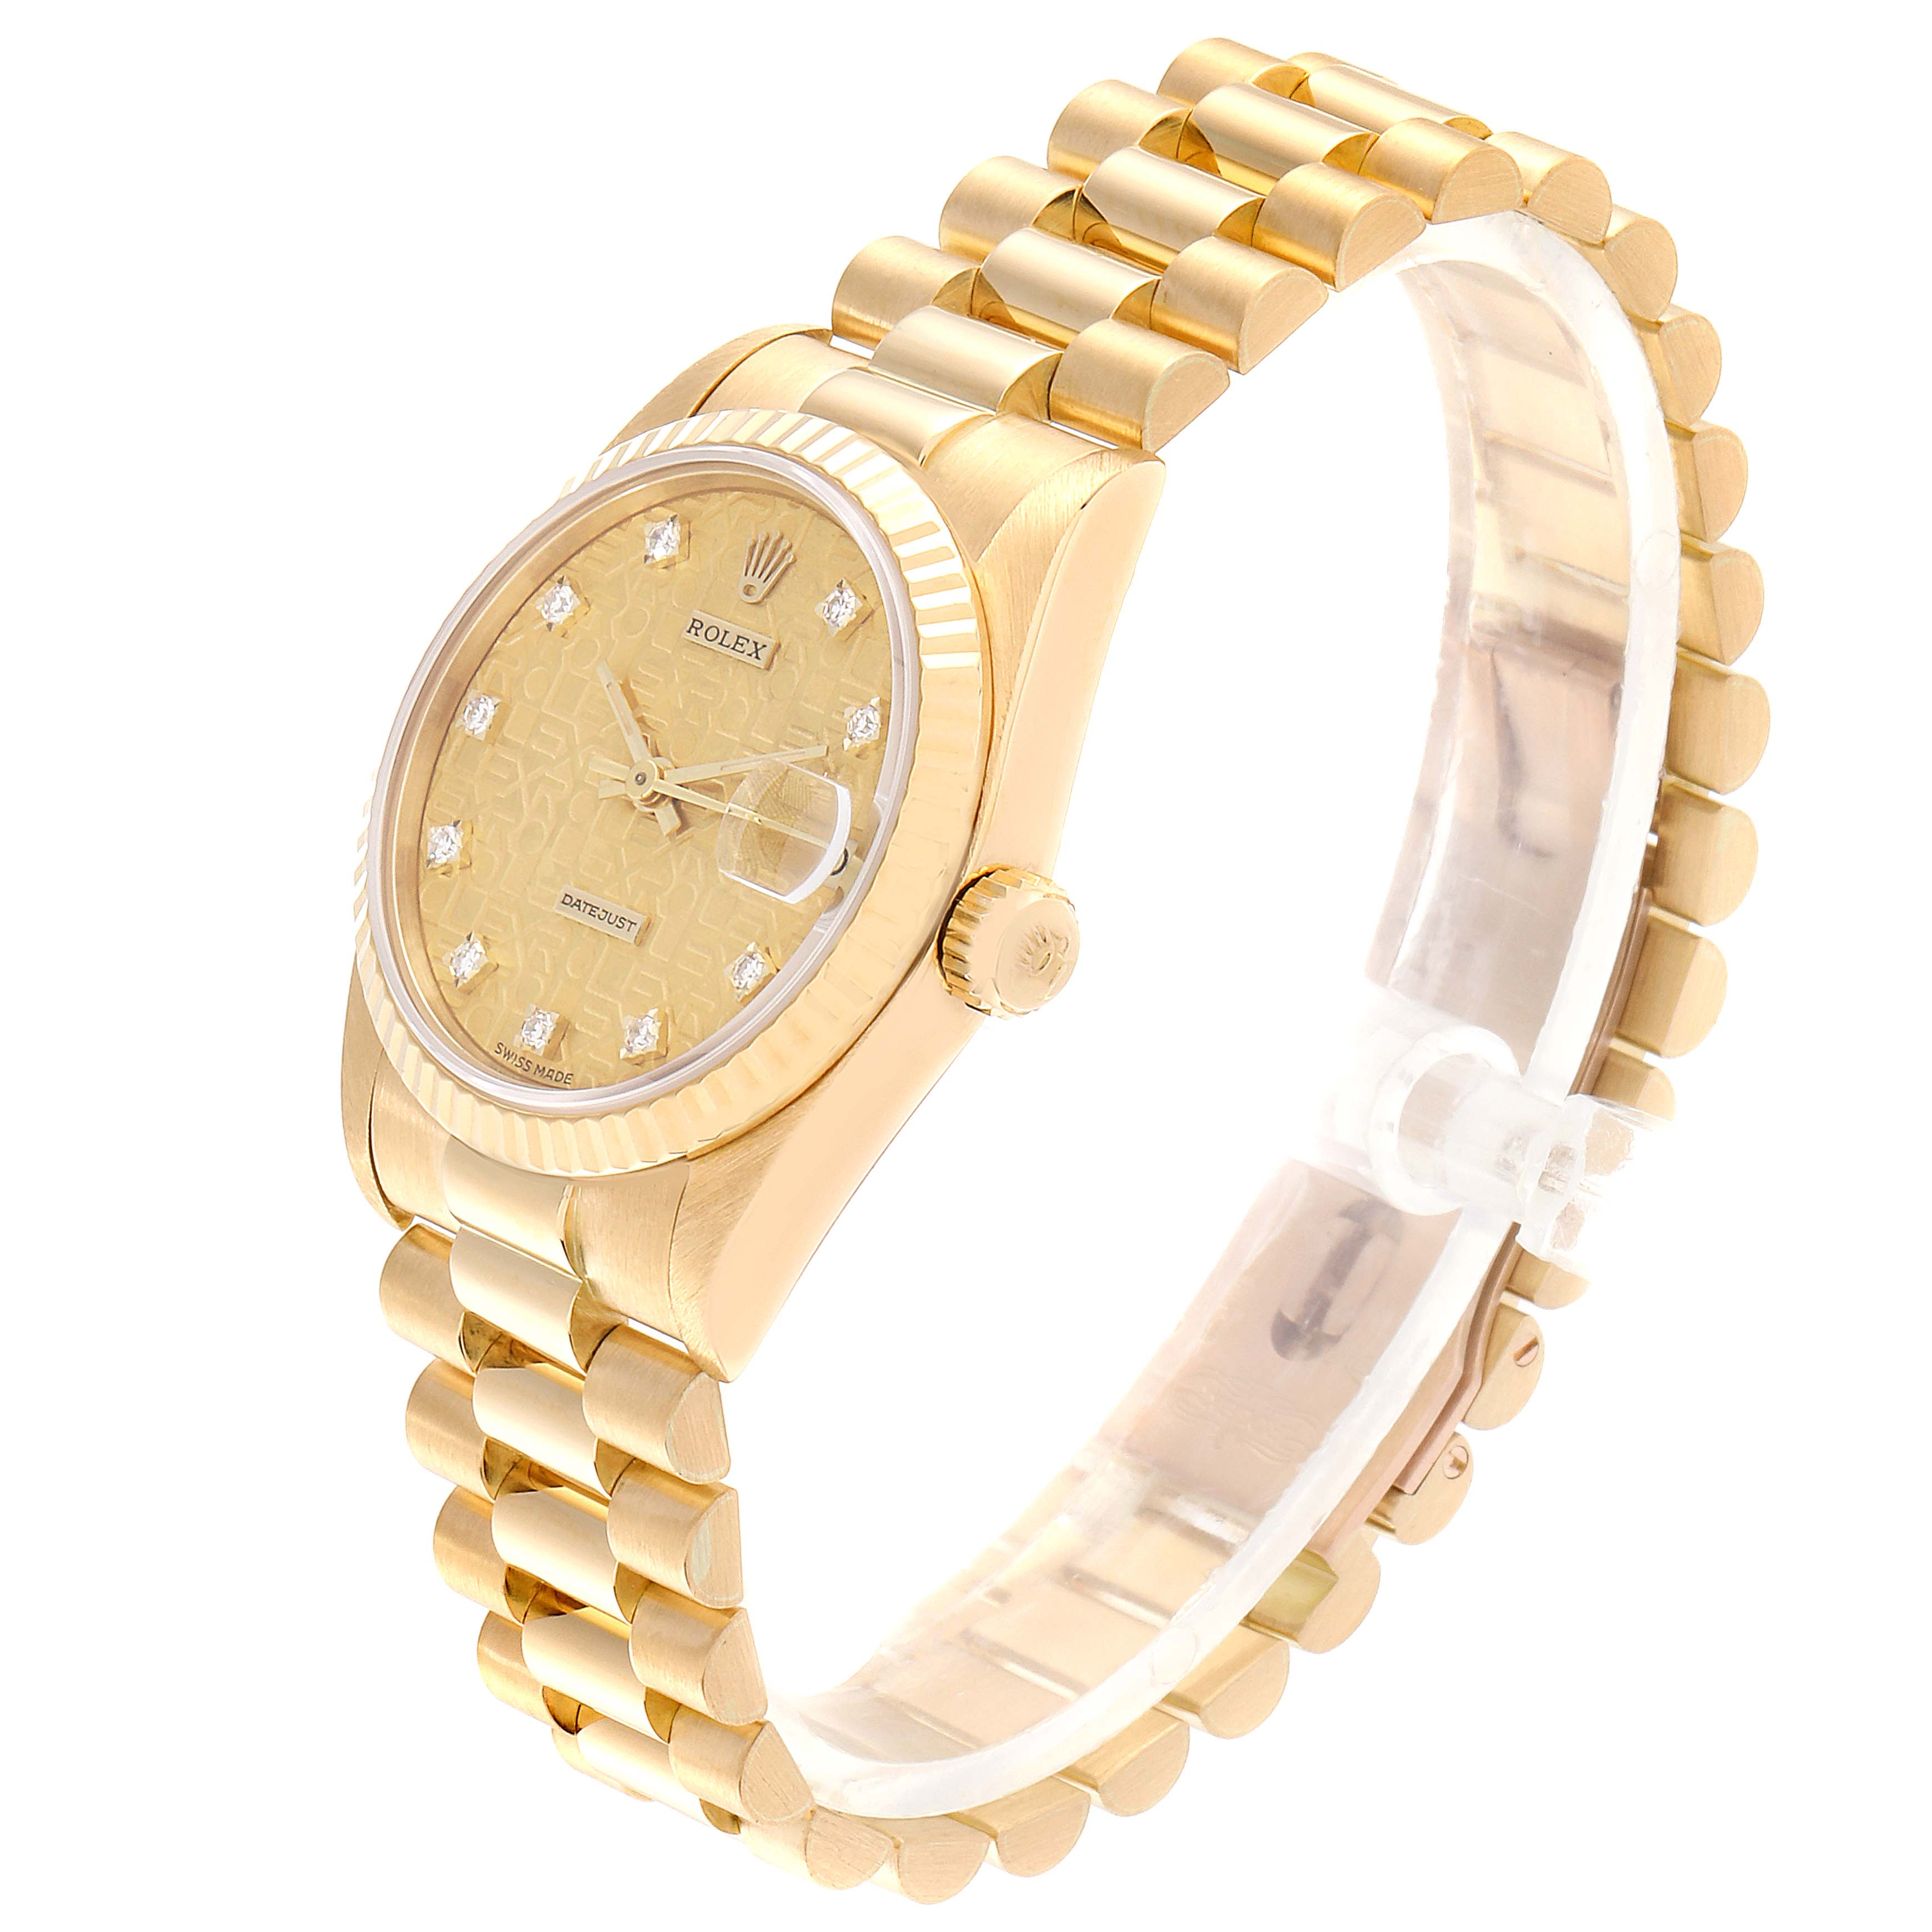 Rolex President Datejust 31 Midsize 18K Gold Diamond Watch 68278 SwissWatchExpo